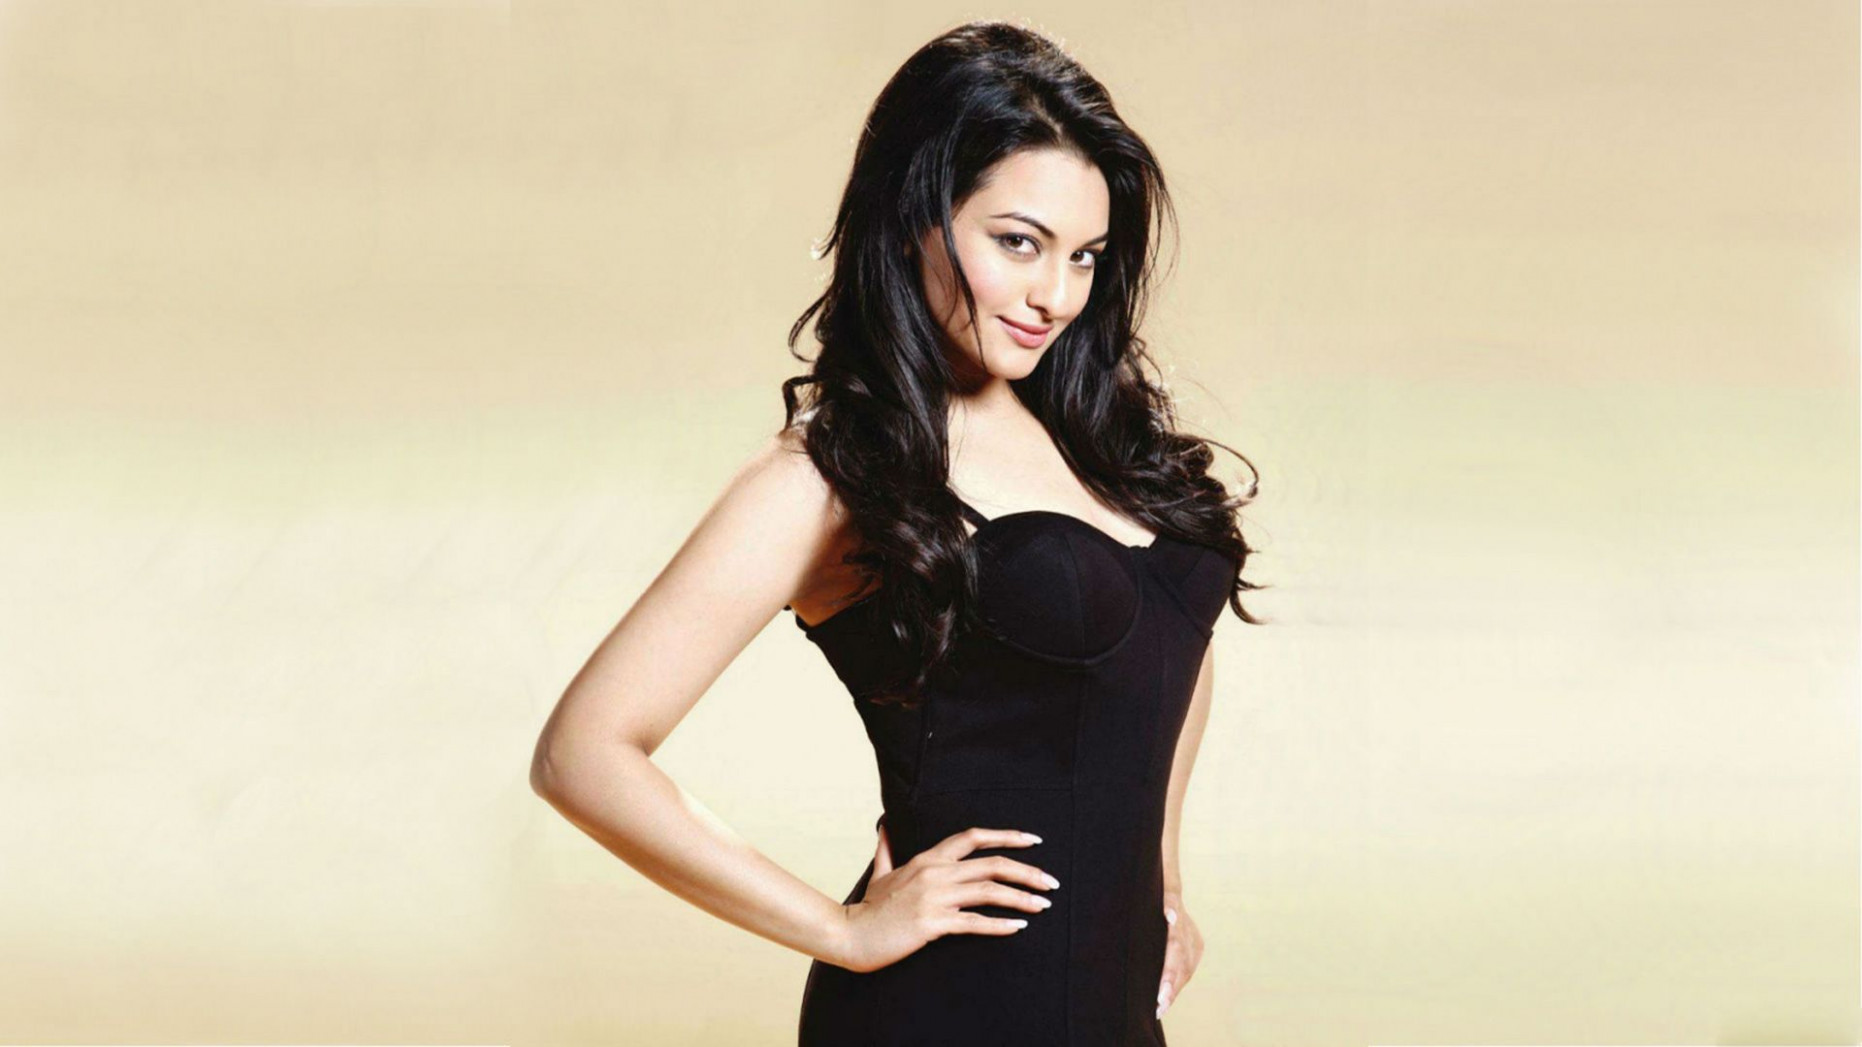 Wallpapers Actress Bollywood Group (75 )